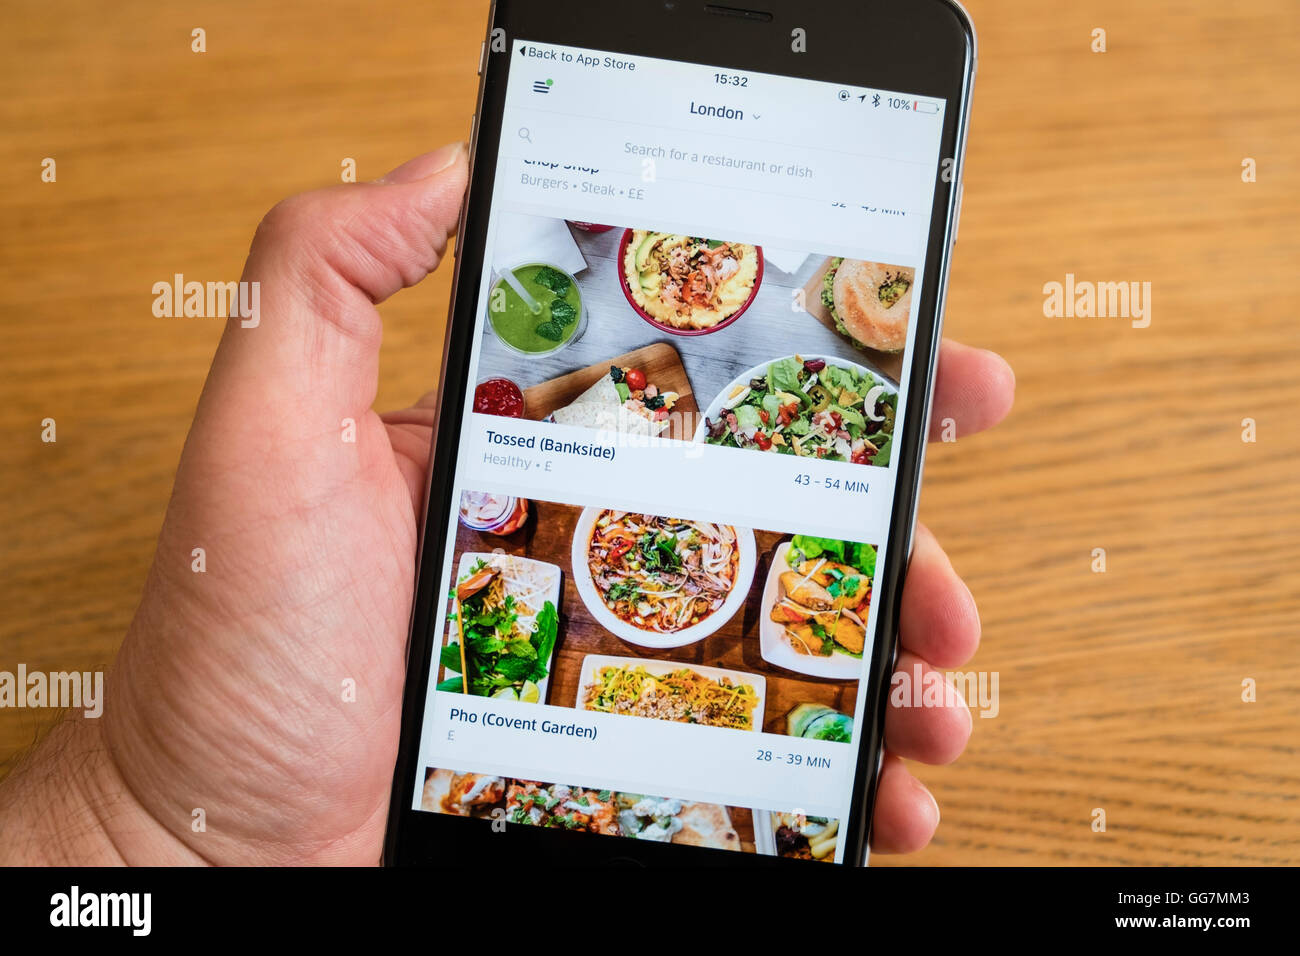 Ubereats app for restaurant delivery services in london show on an ubereats app for restaurant delivery services in london show on an iphone 6 smartphone forumfinder Image collections